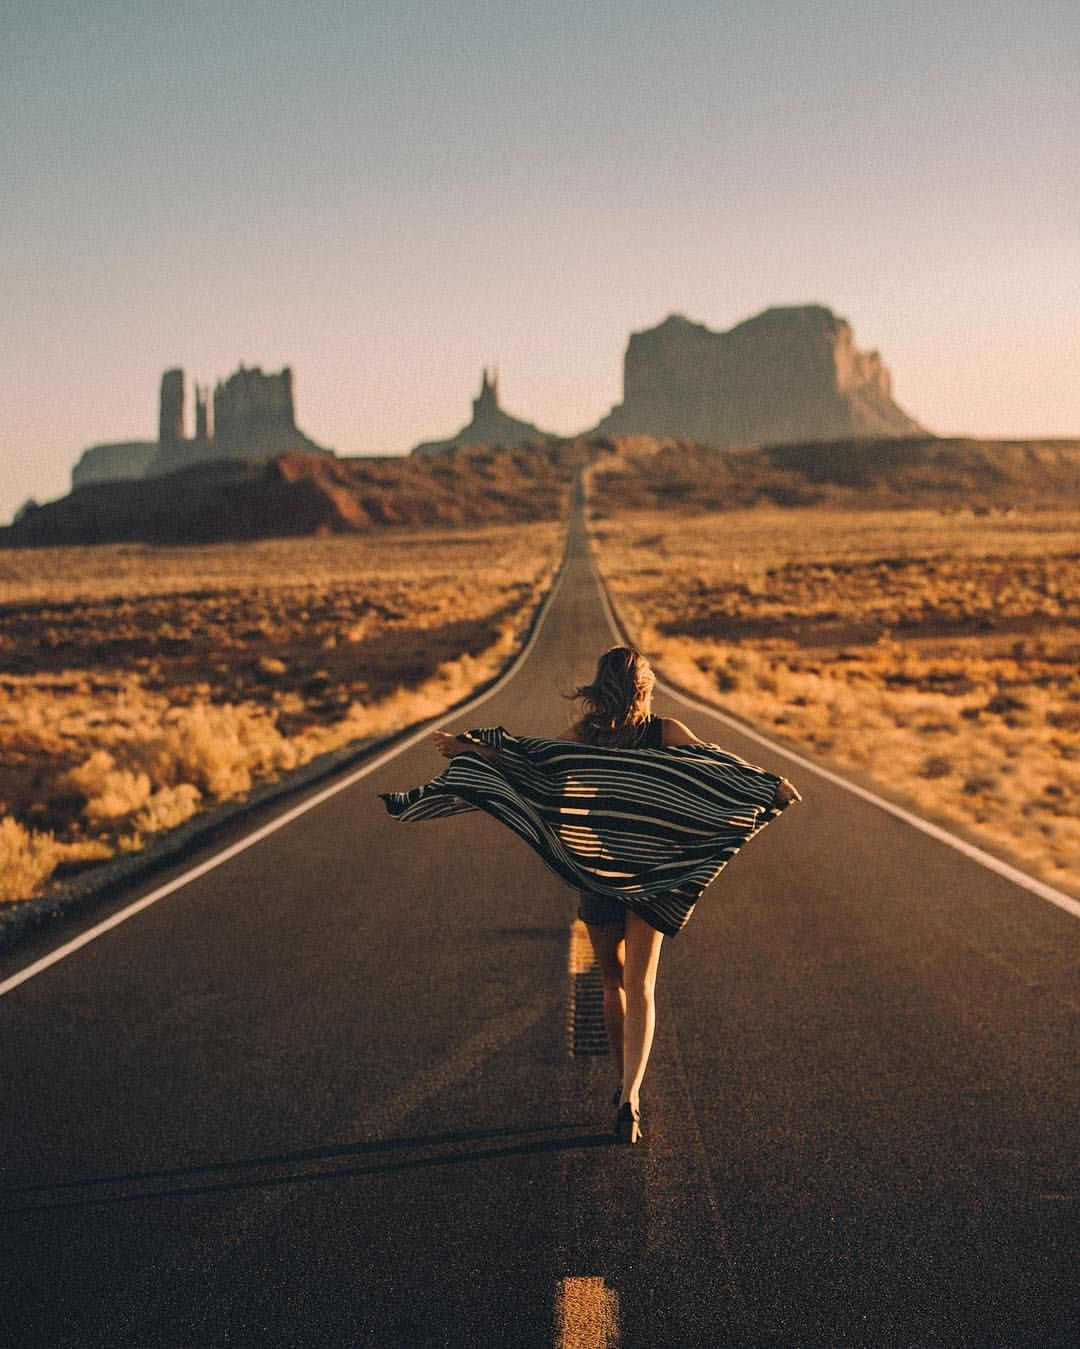 """Bryan Adam Castillo on Instagram: """"running through monument valley. having such a fun road trip through the southwest so far! we've already hit sedona, the grand canyon, and…"""""""